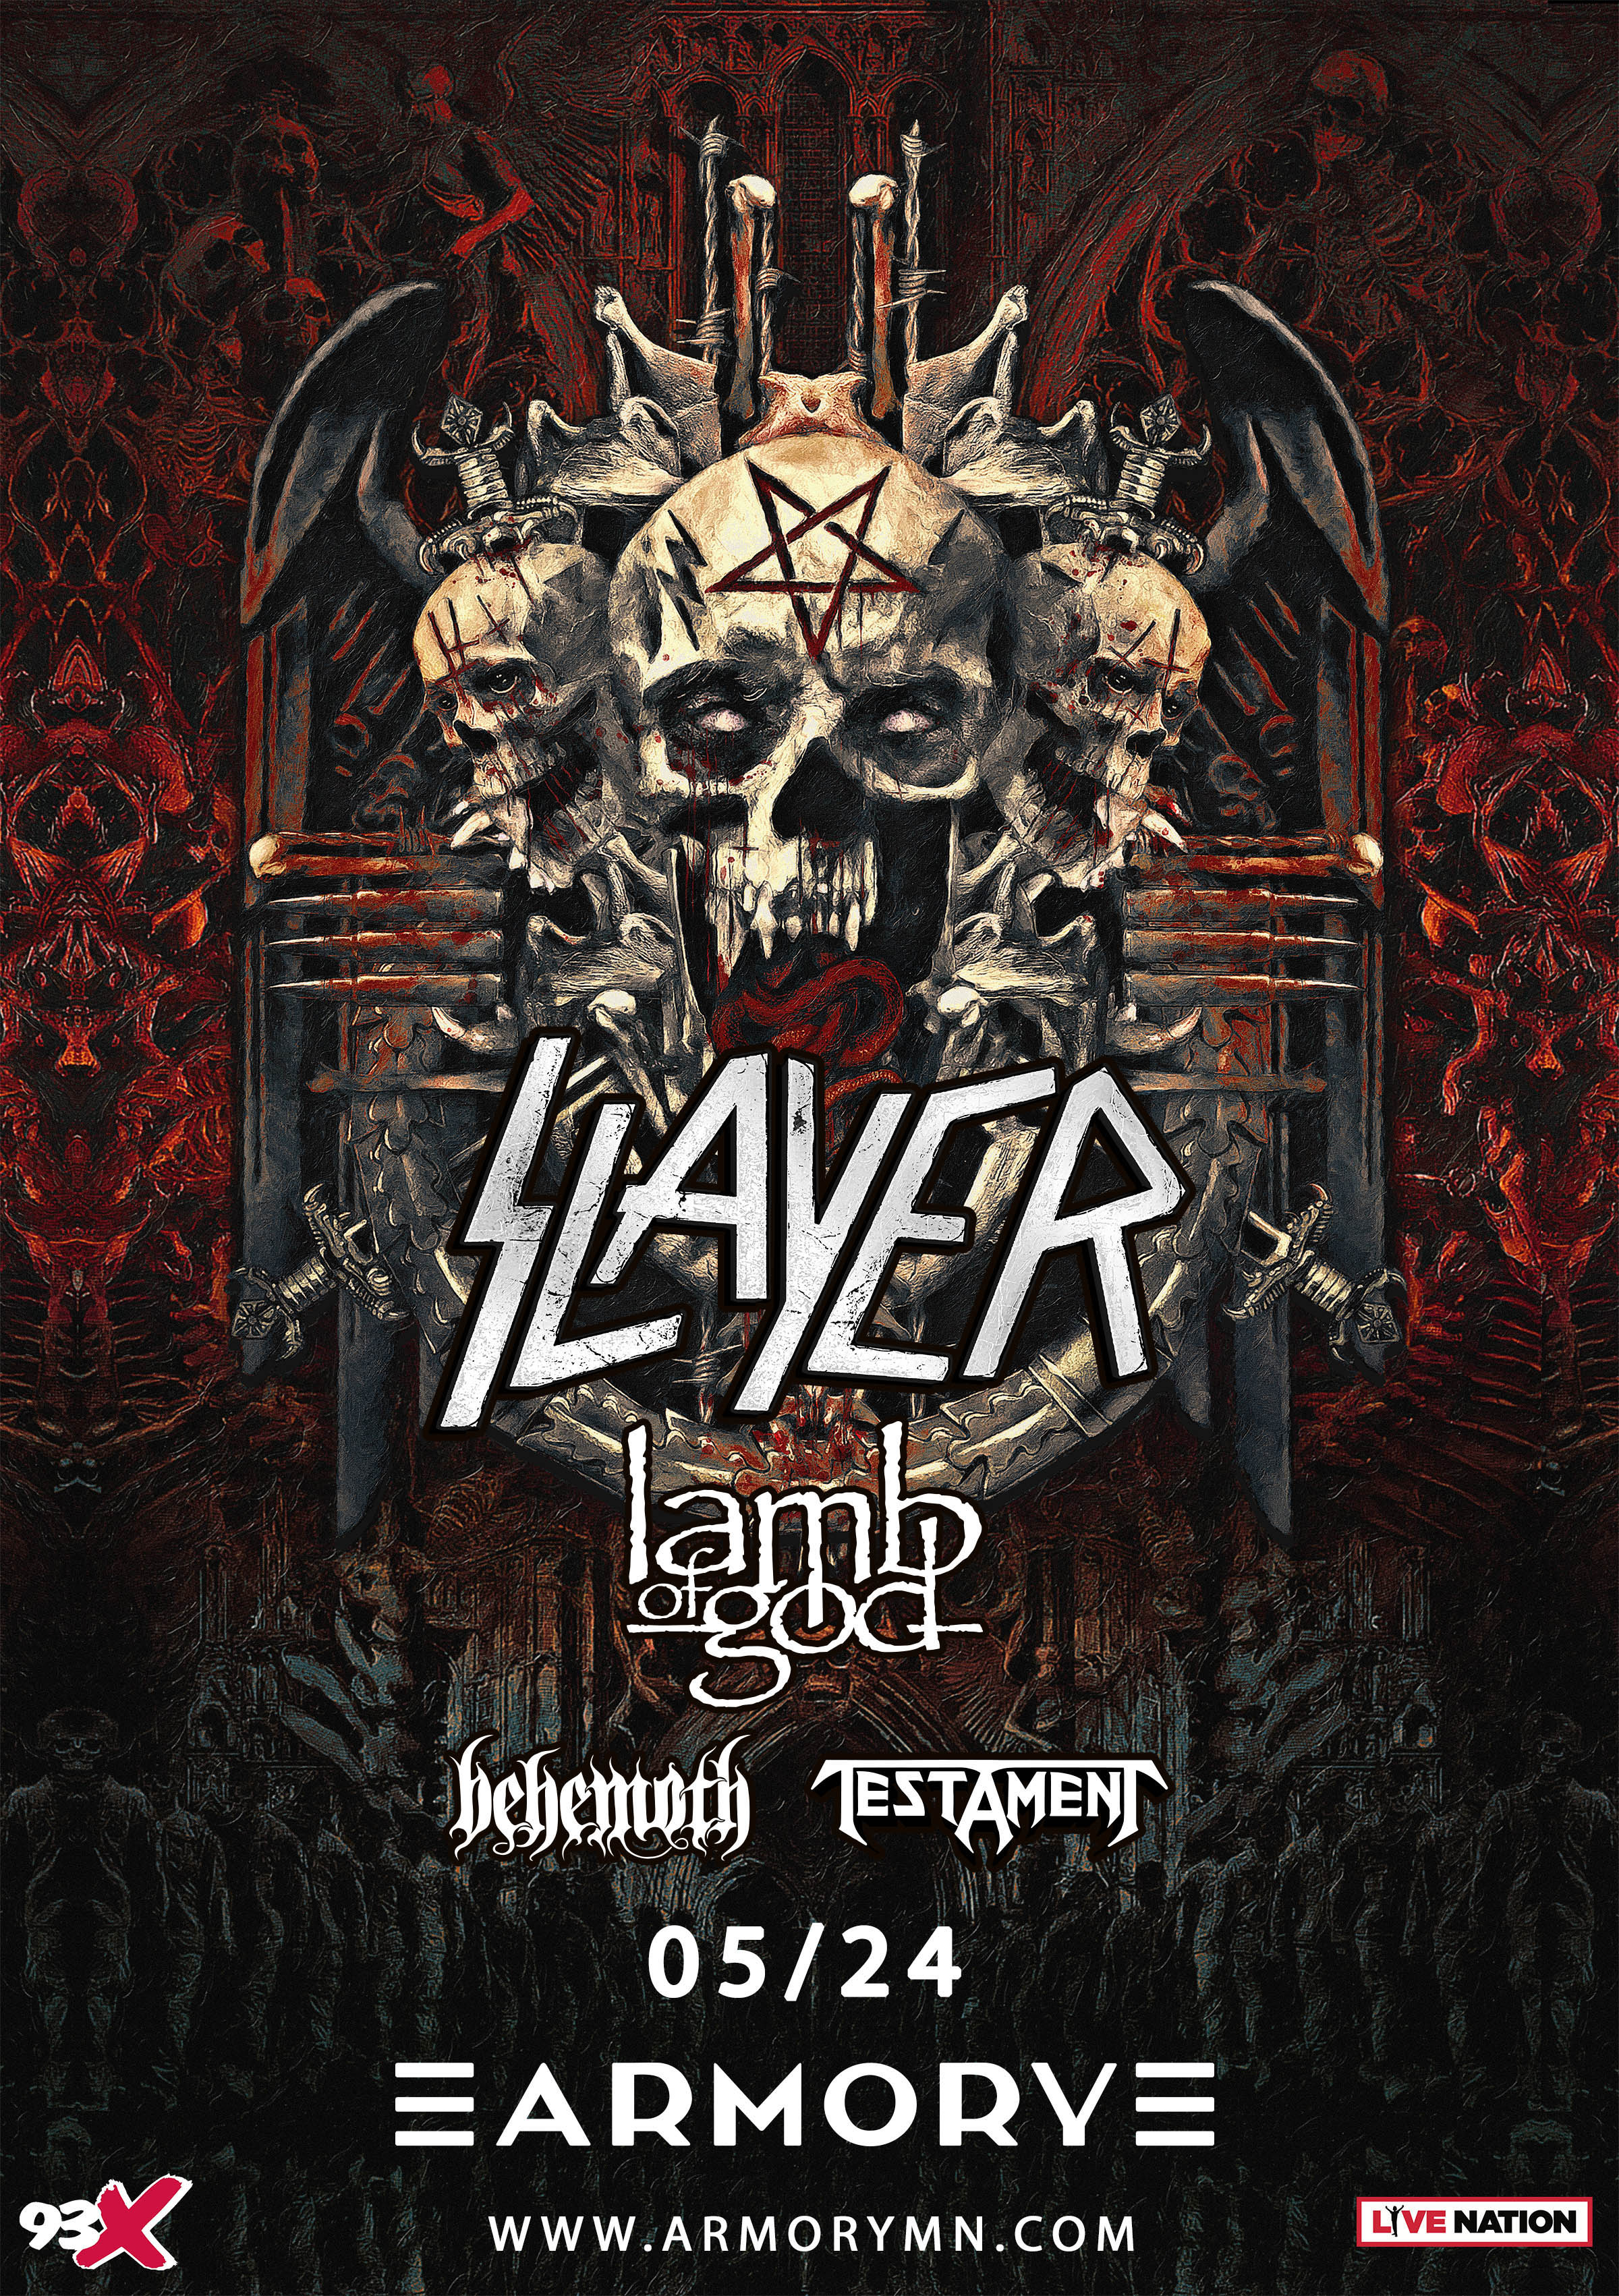 SOLD OUT: Slayer